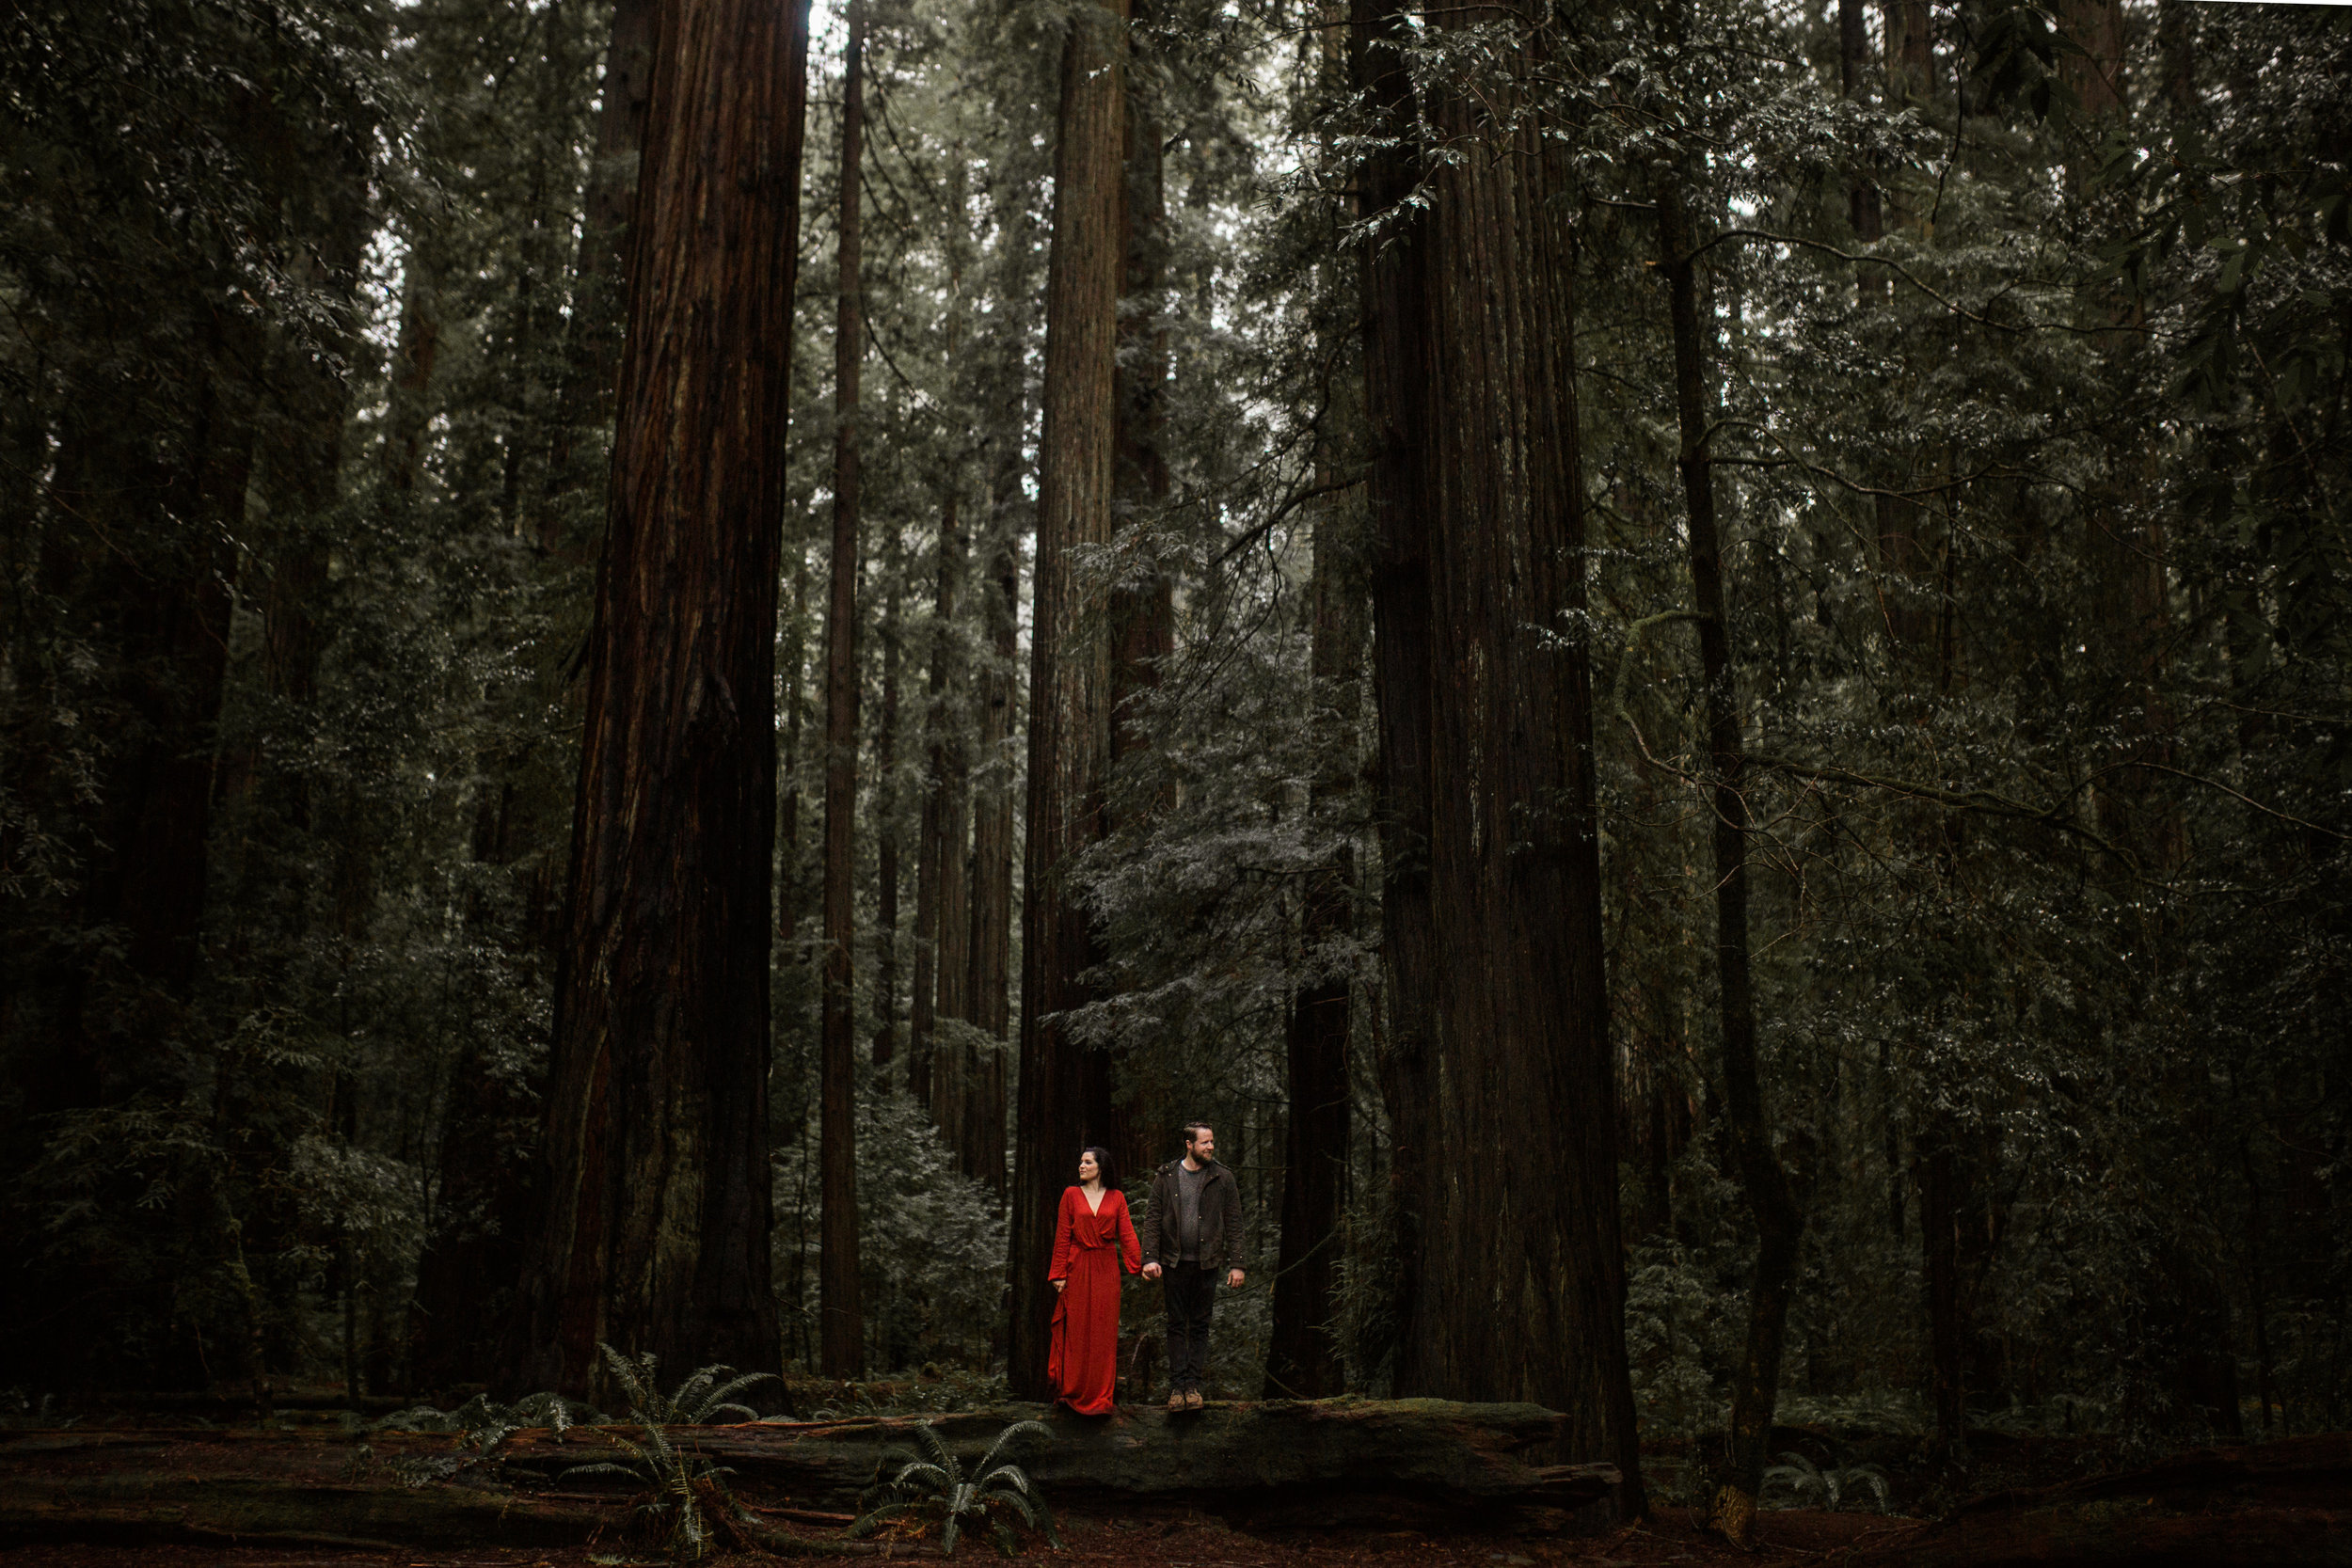 nicole-daacke-photography-redwoods-national-park-forest-rainy-foggy-adventure-engagement-session-humboldt-county-old-growth-redwood-tree-elopement-intimate-wedding-photographer-55.jpg